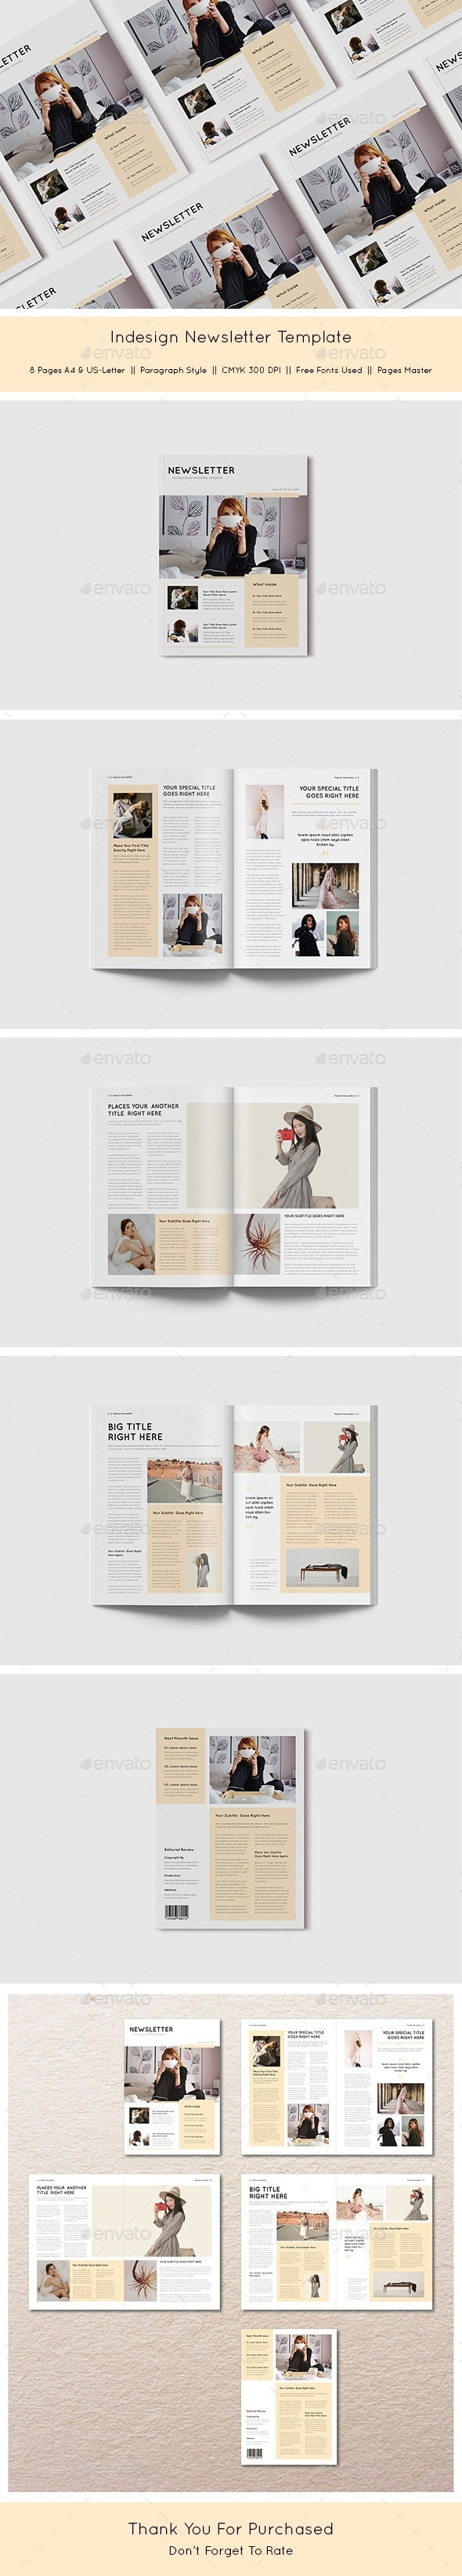 InDesign Newsletter Template - Newsletters Print Templates